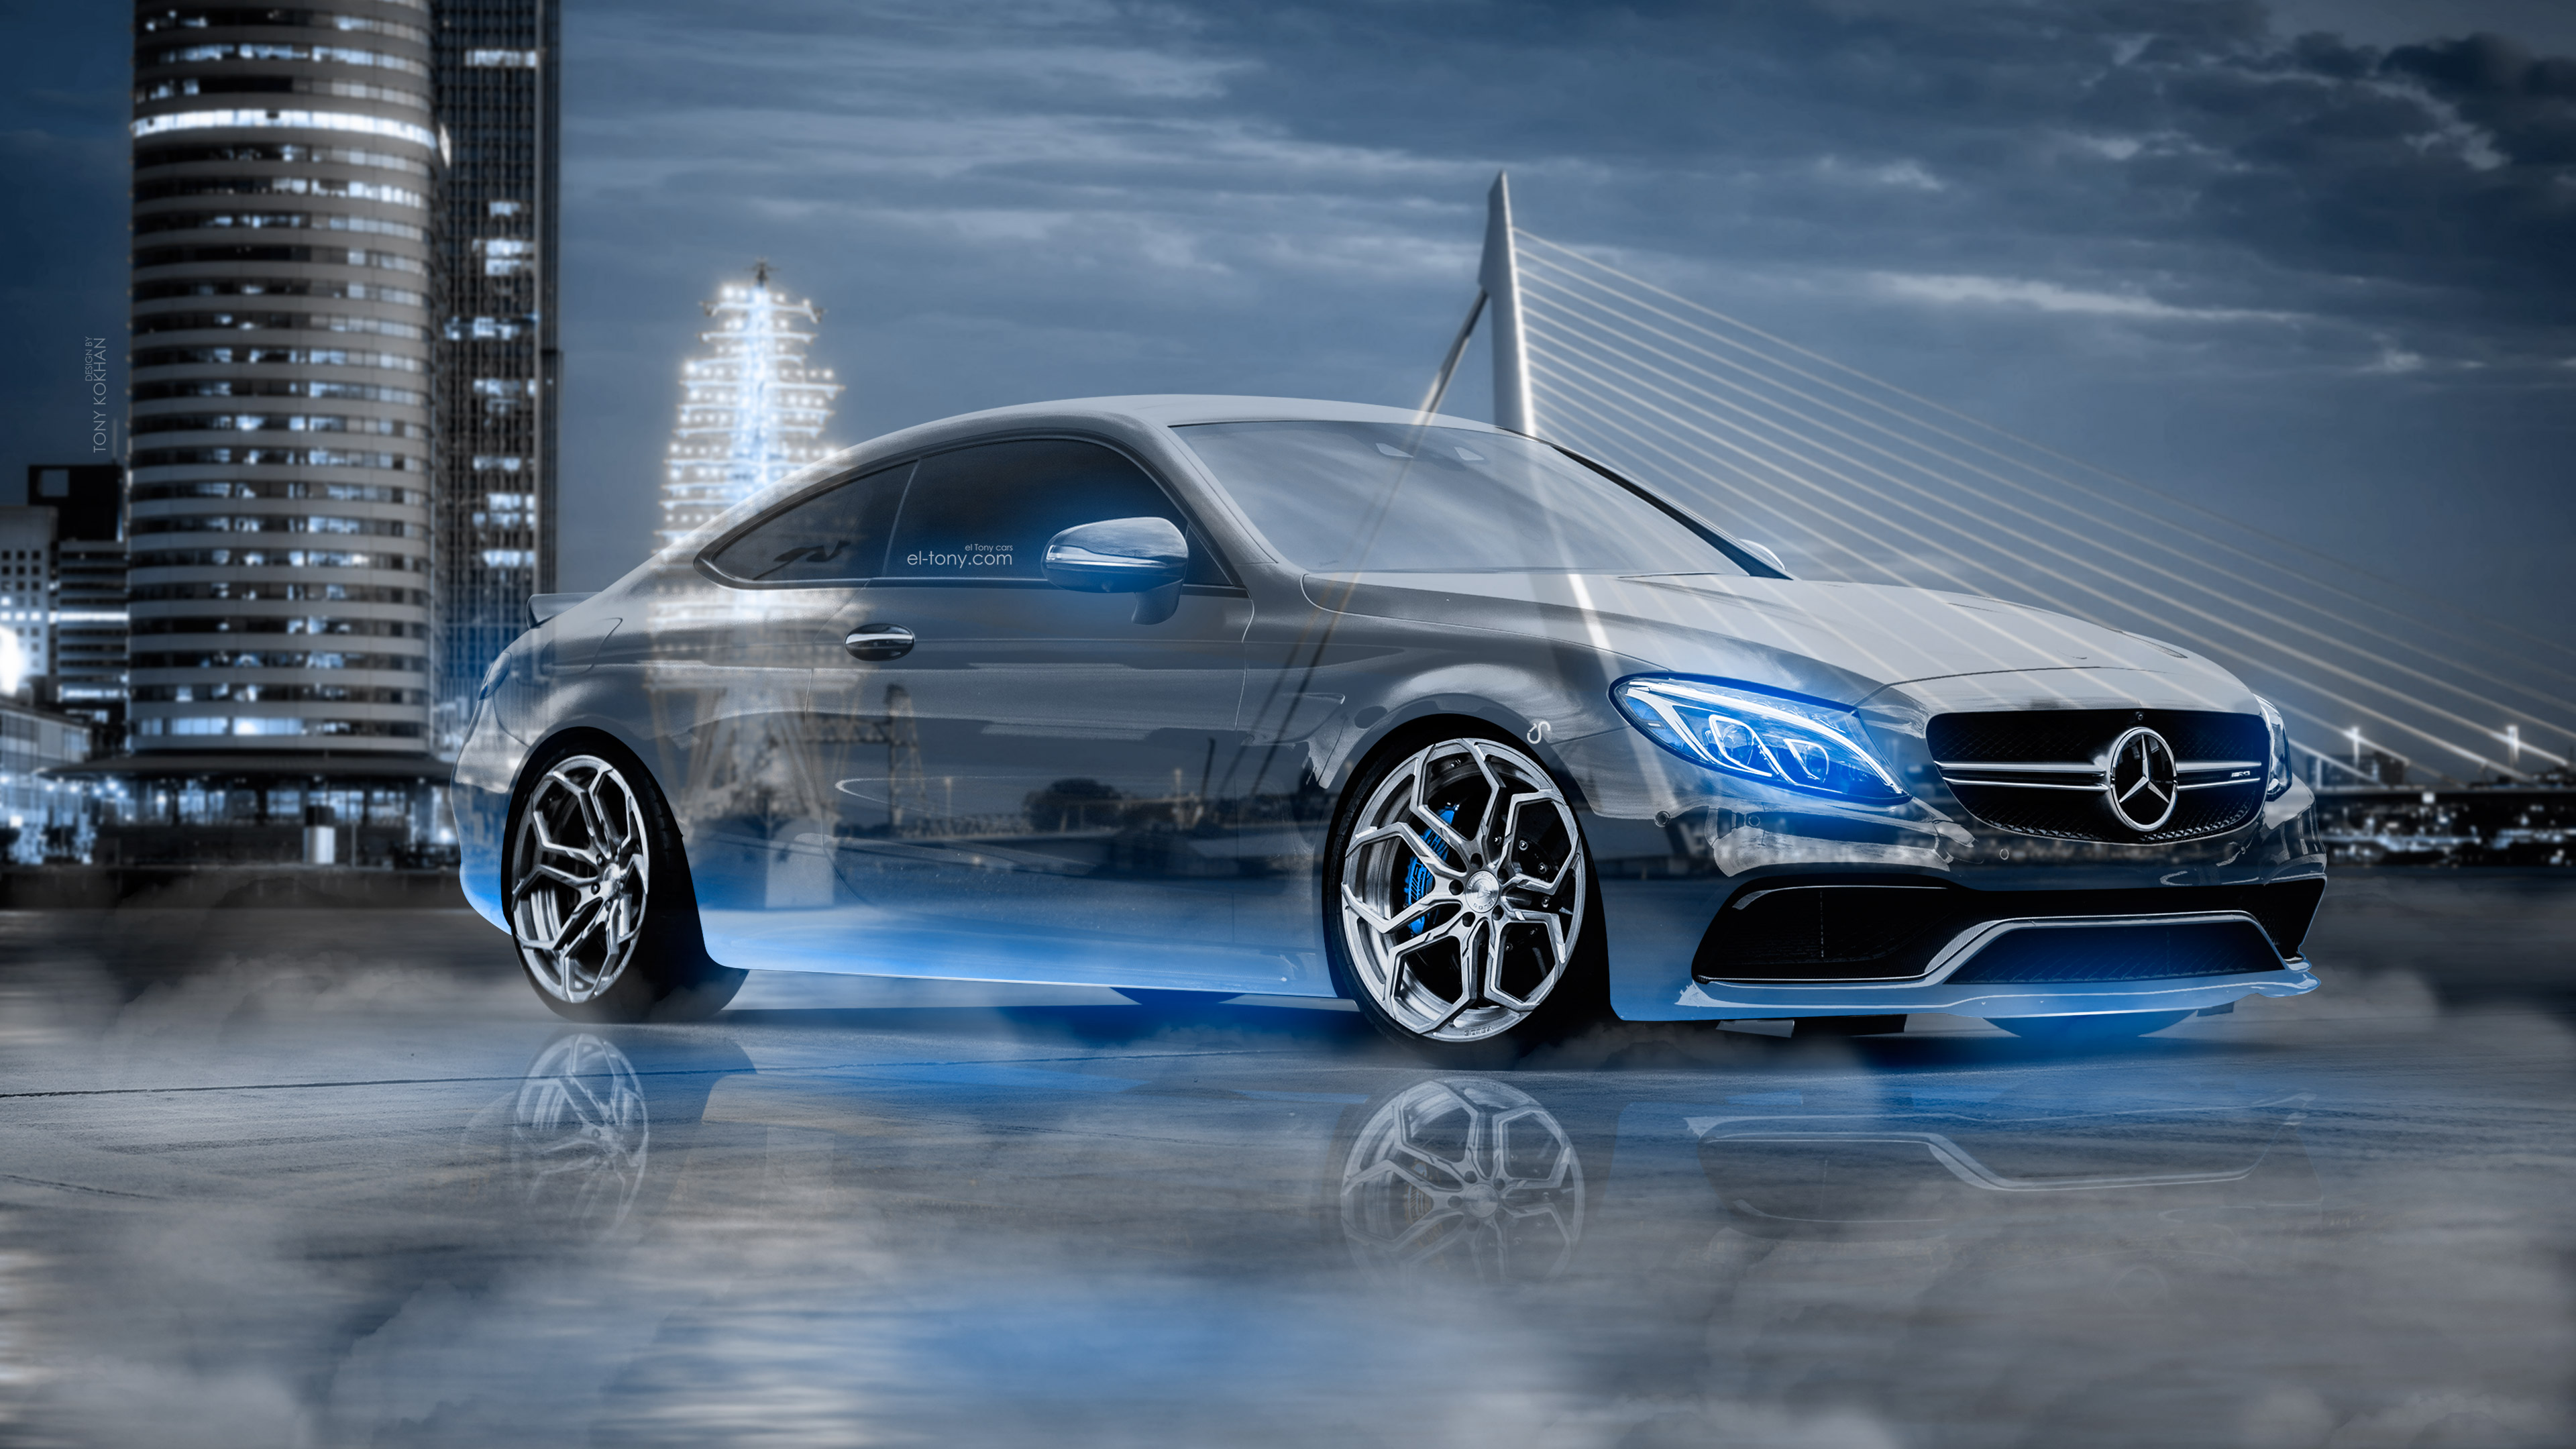 Mercedes Benz C63s Amg Сoupe Crystal City Rotterdam